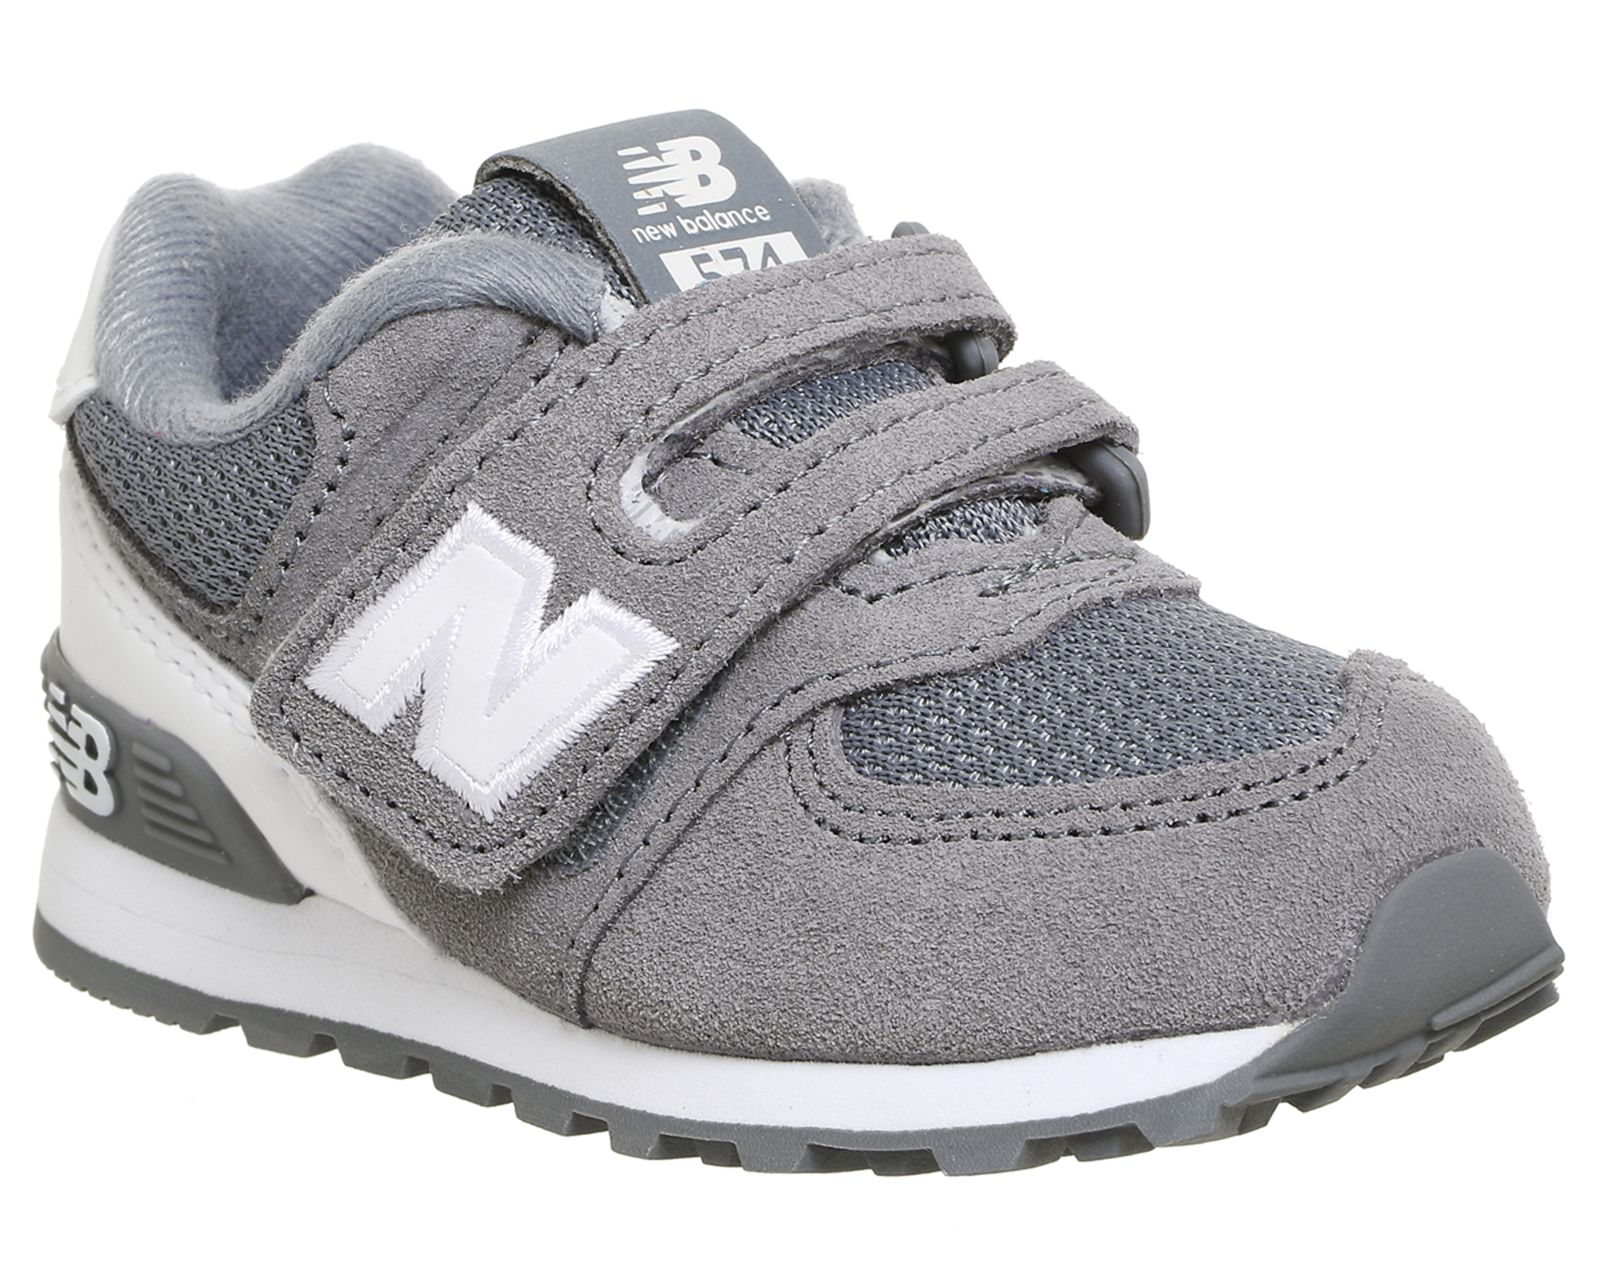 New Balance Kids 574 Velcro 5 9 Grey White | Kid shoes, Boys